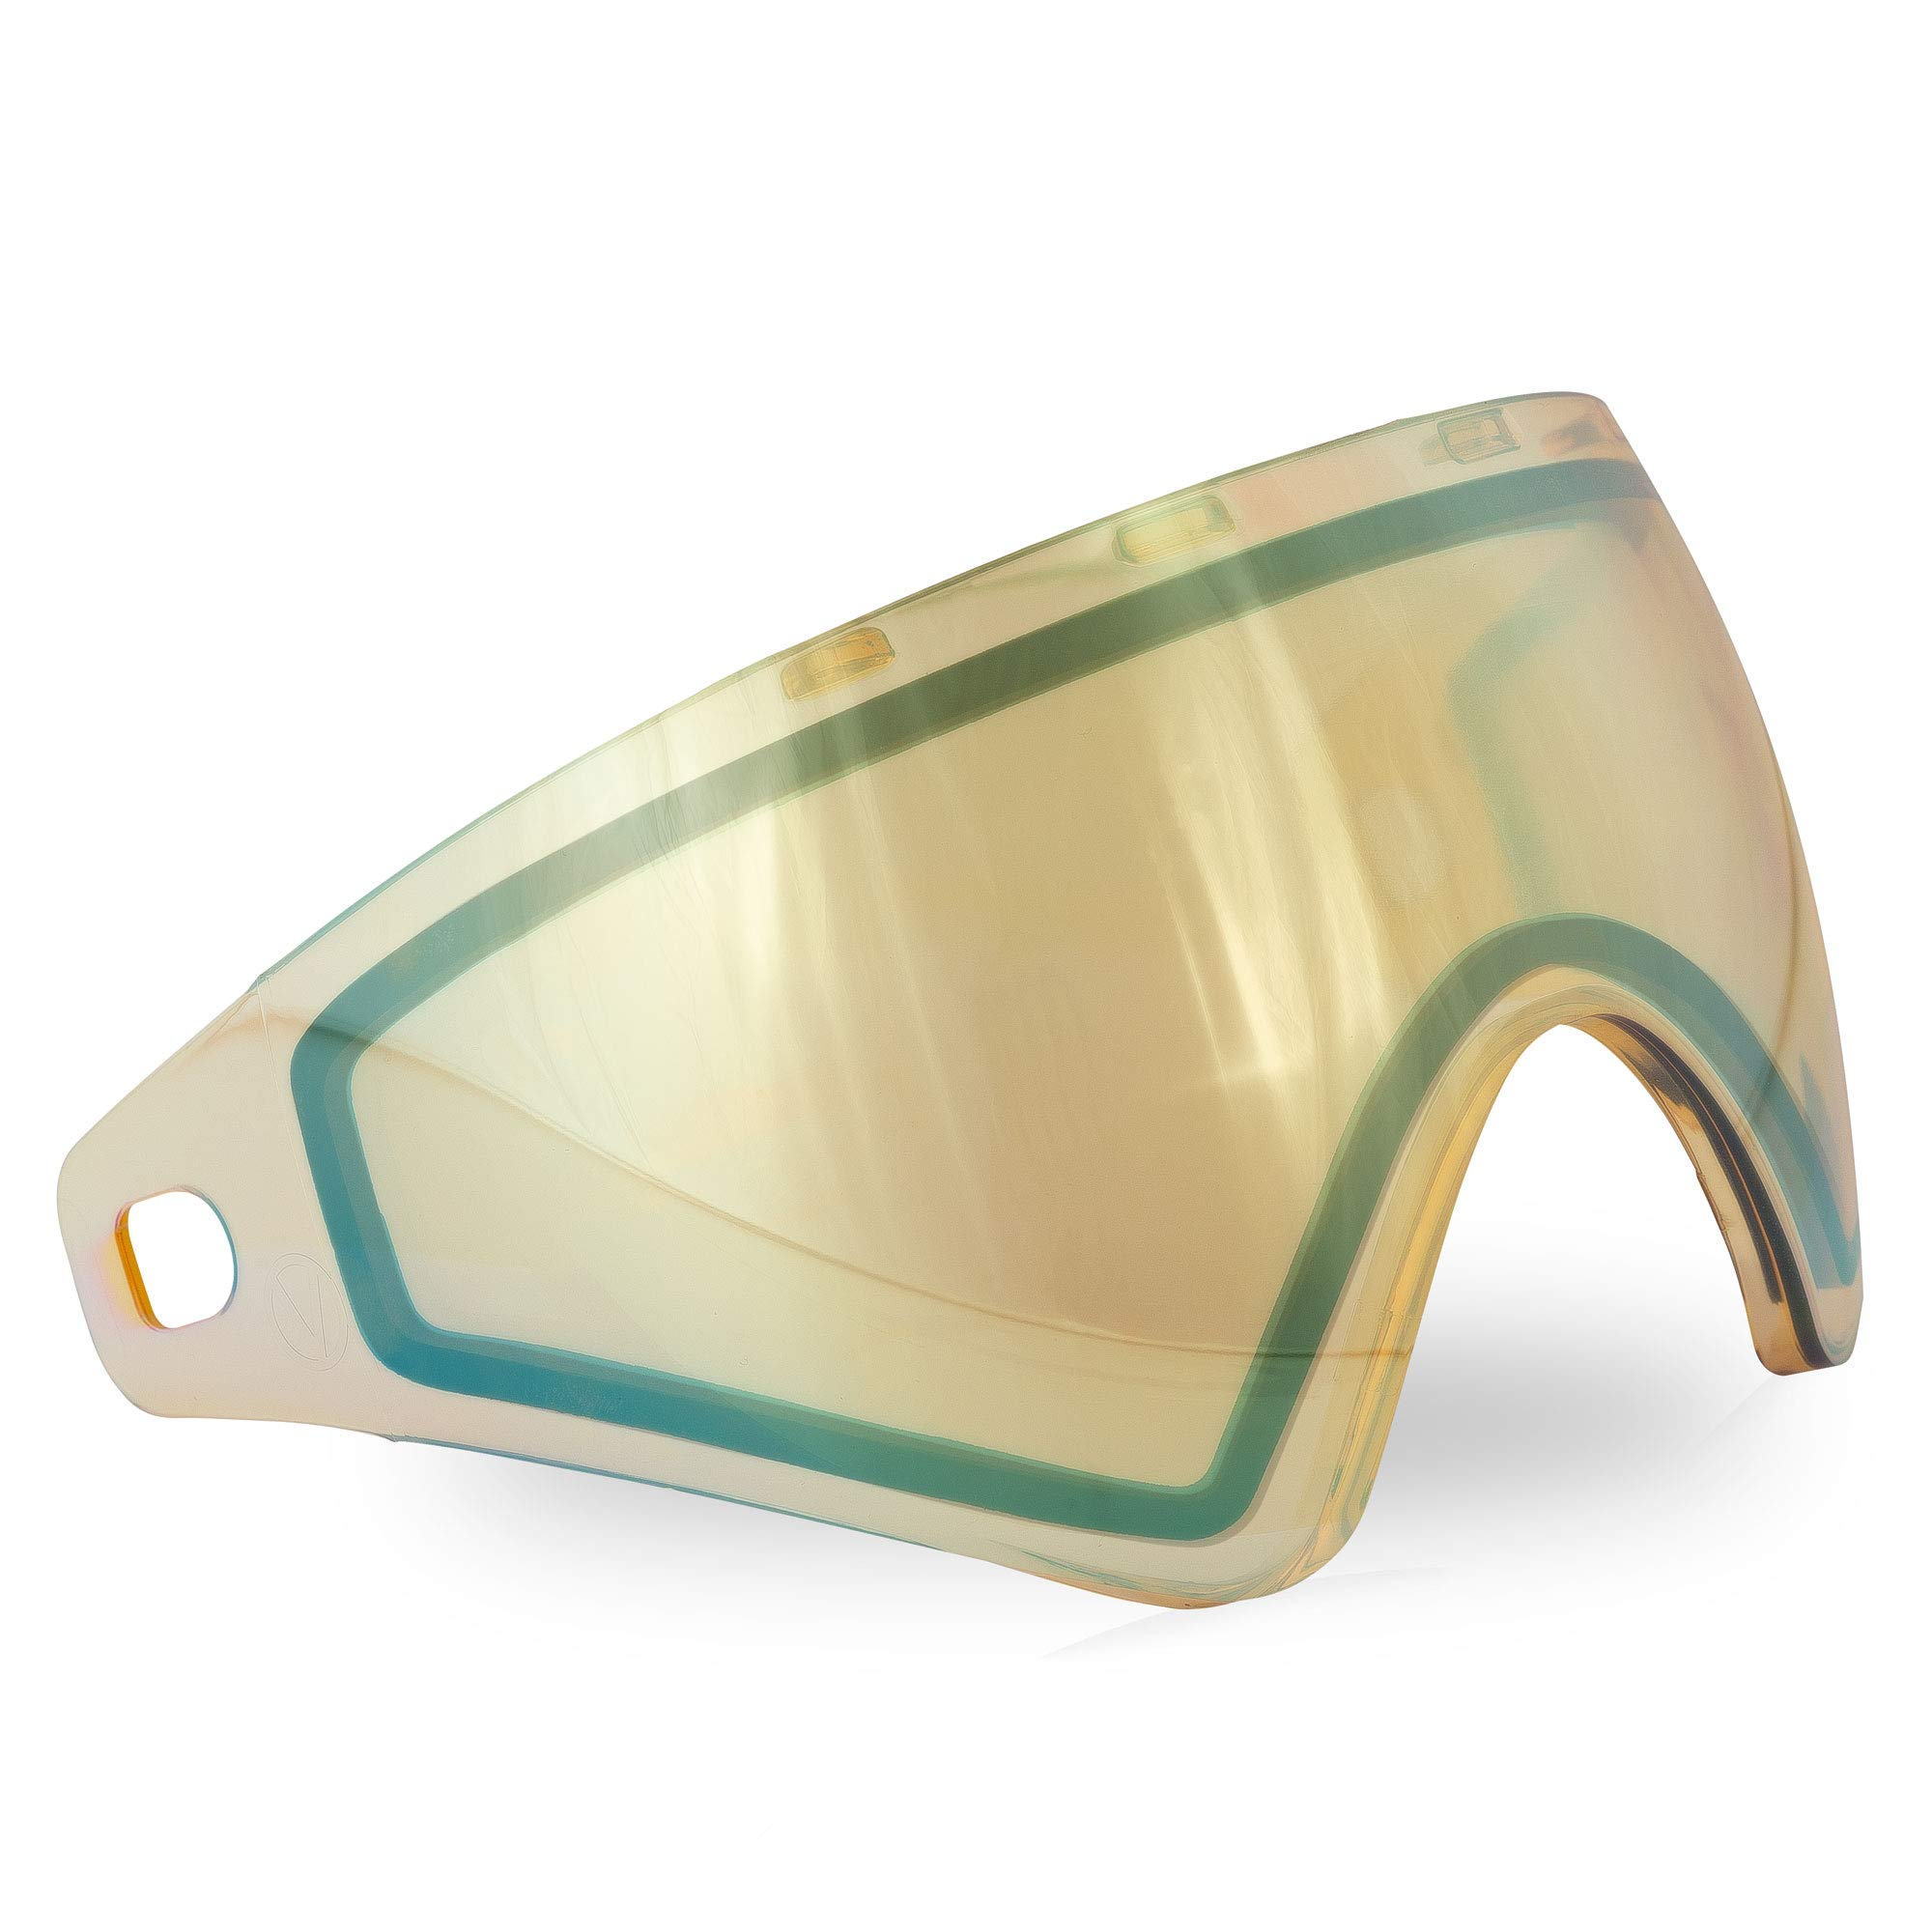 Bunker Kings CMD/Virtue VIO Thermal Paintball Goggle/Mask Replacement Lens - HD Gold by Bnkr Kings